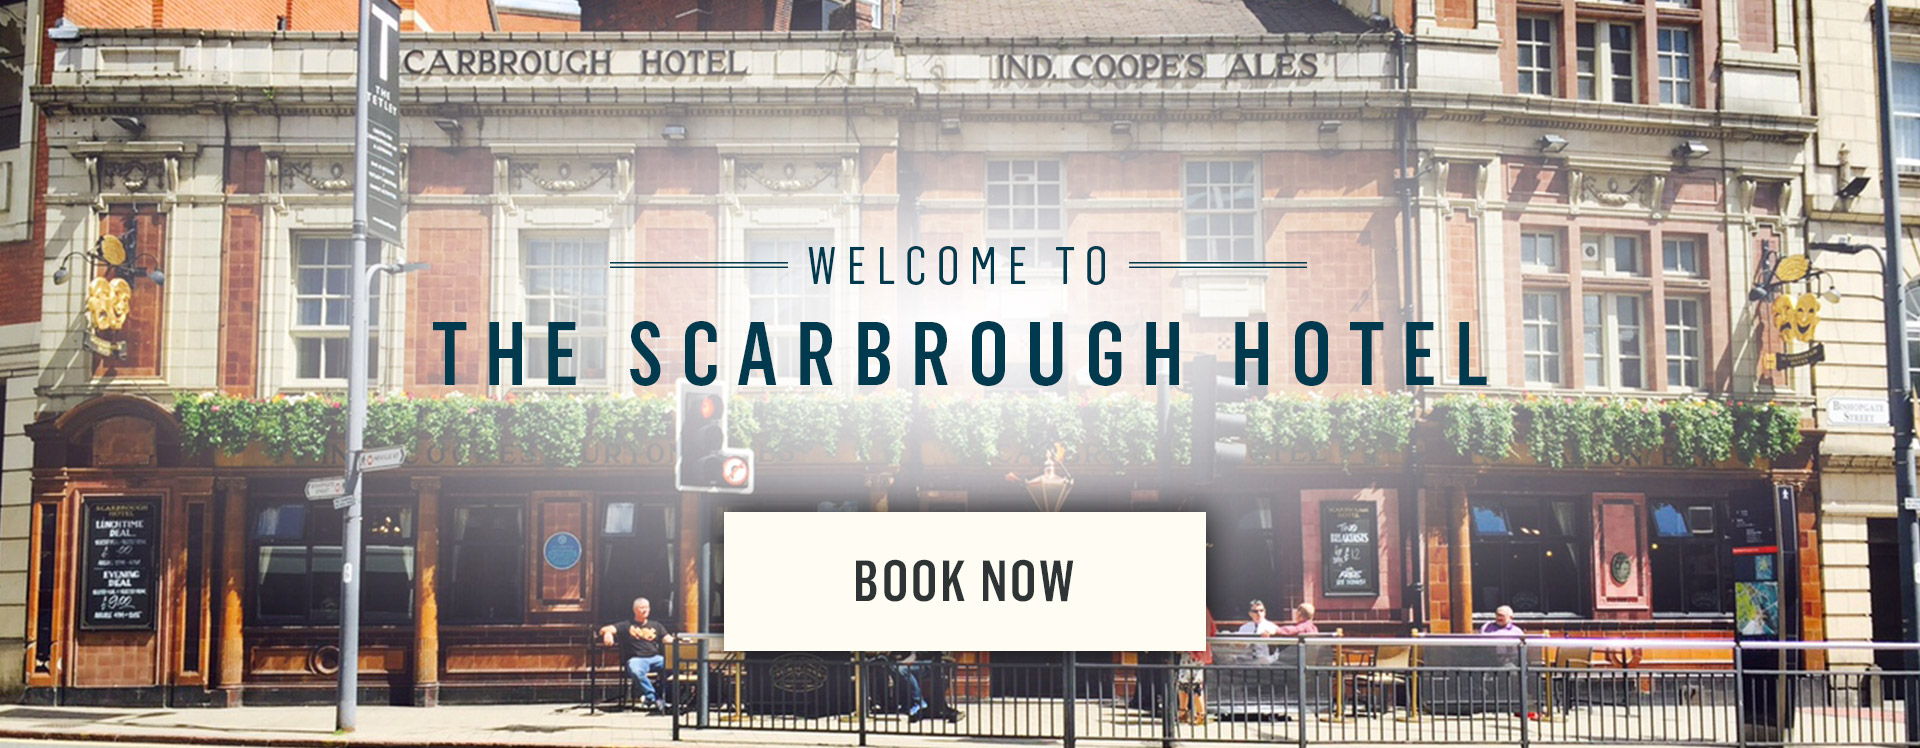 Welcome to The Scarbrough Hotel - Book Now